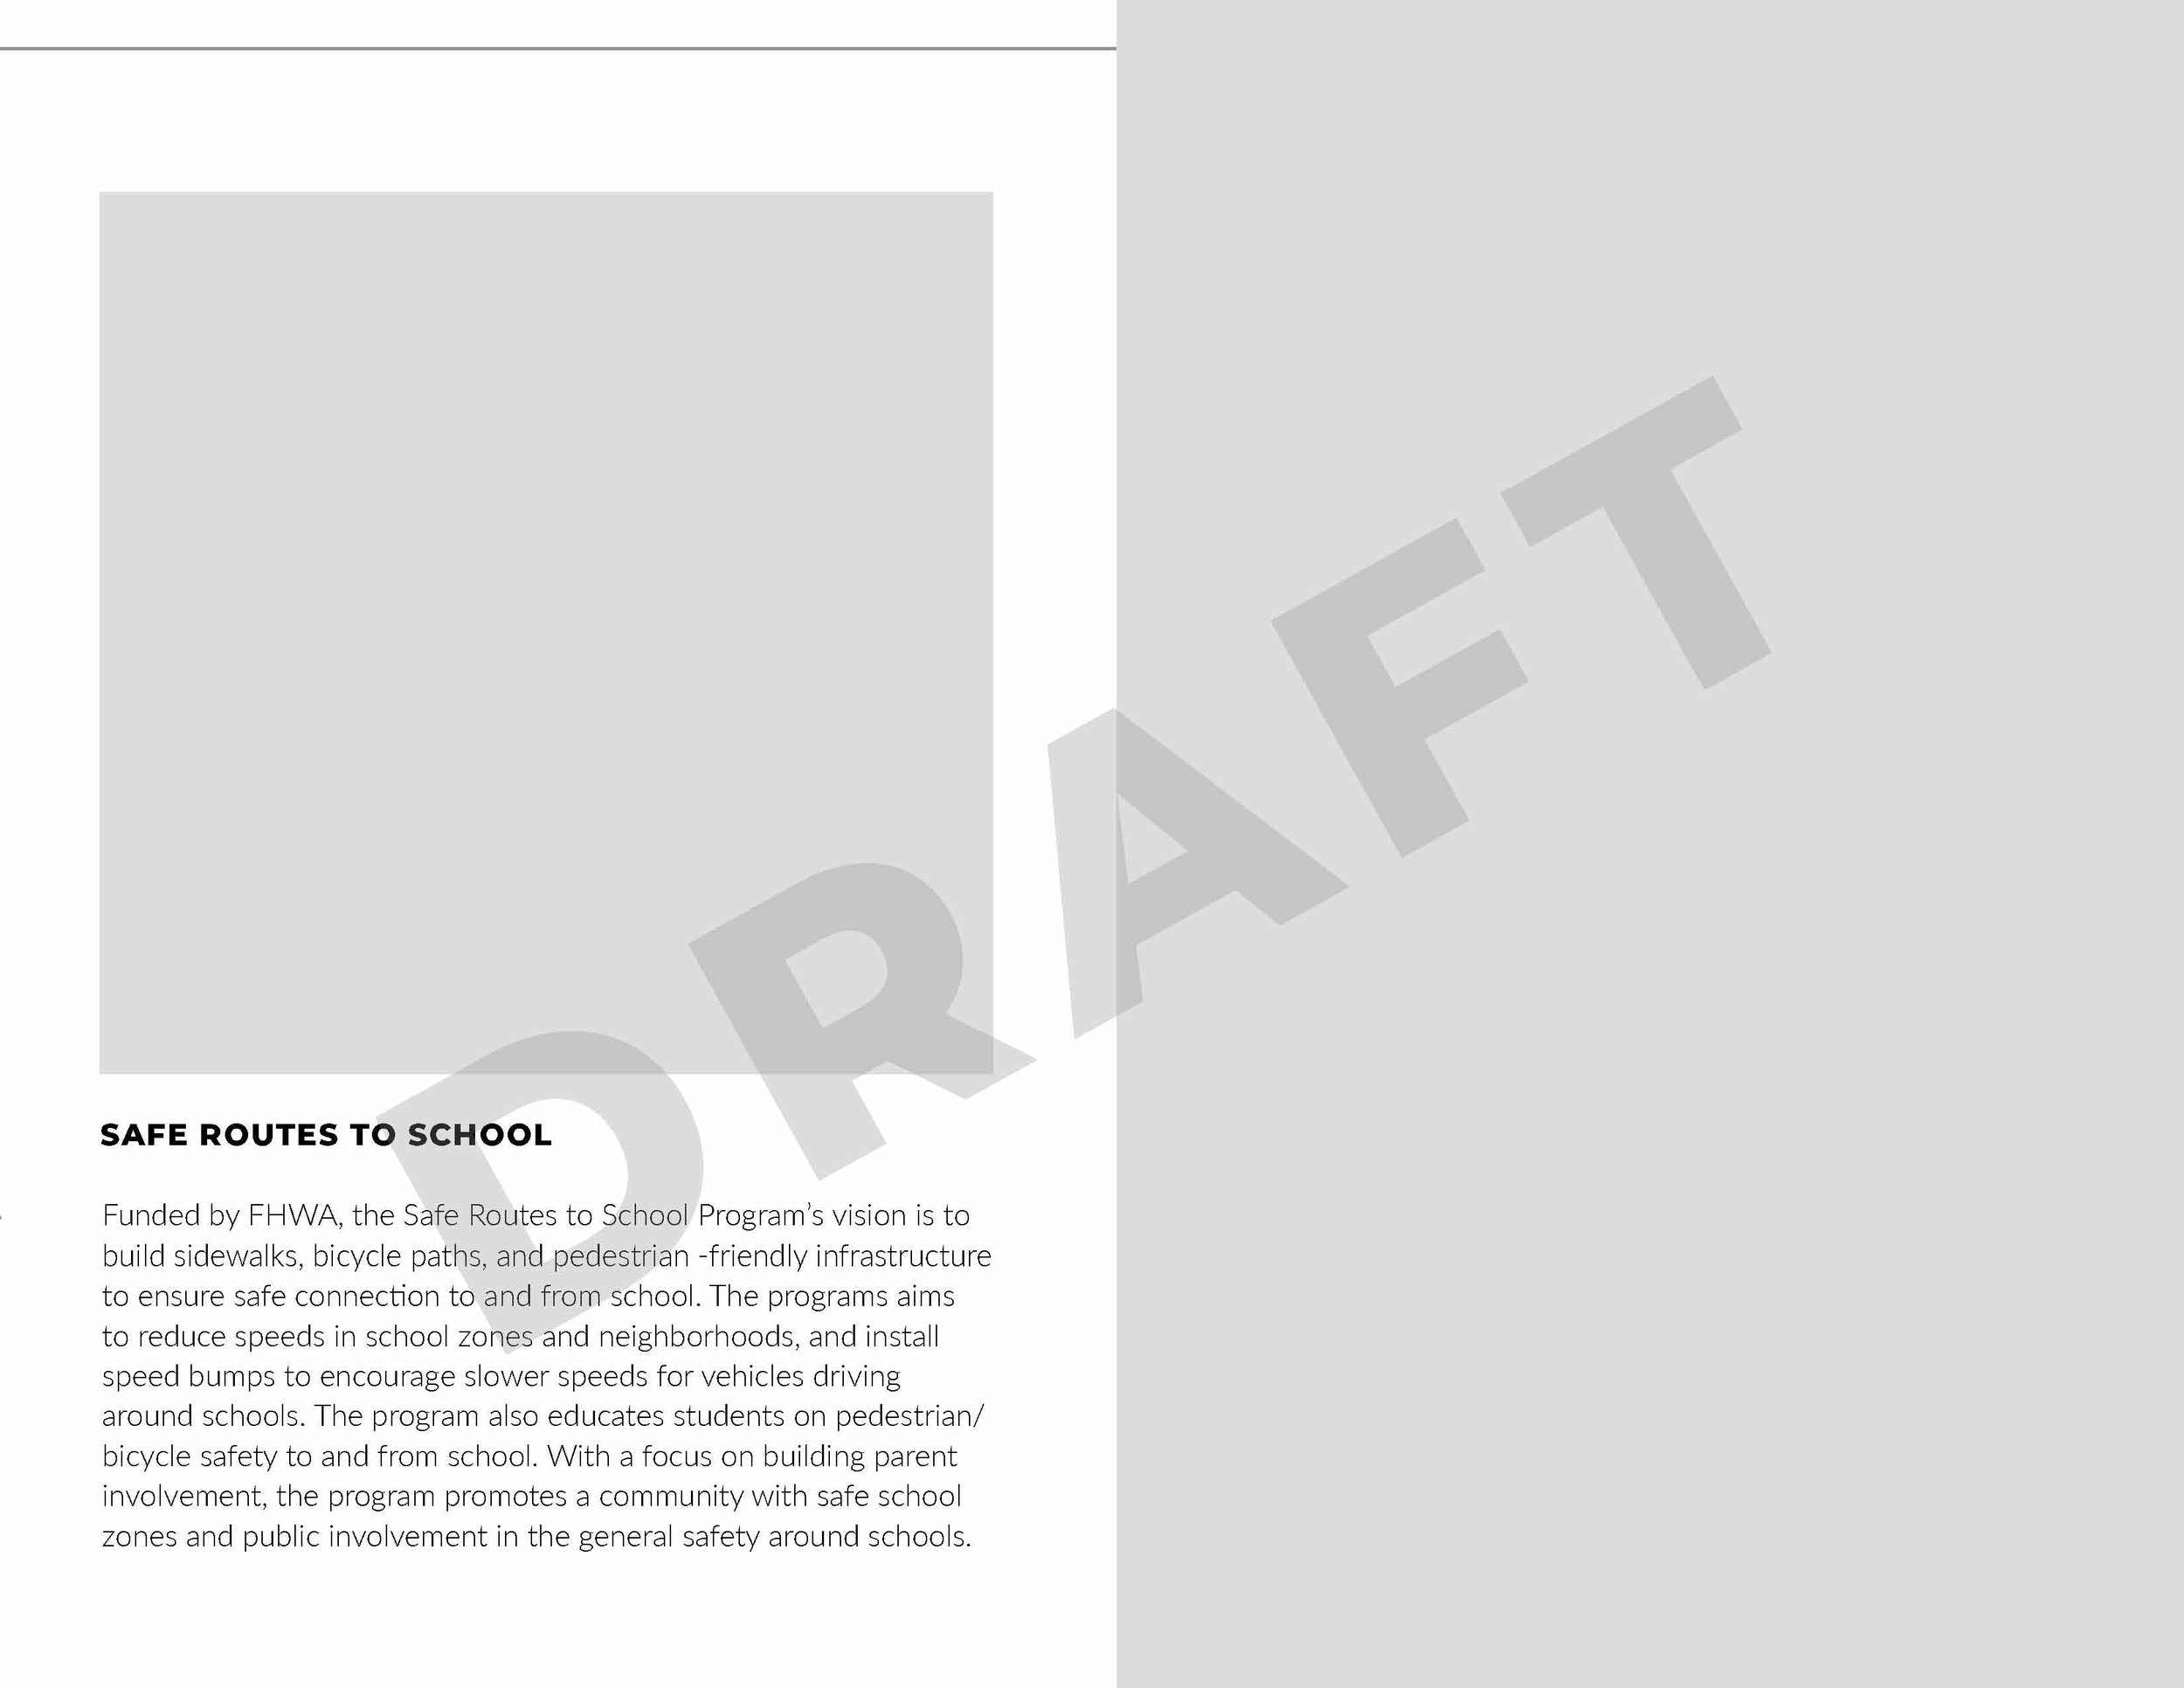 LRTP_ALLCHAPTERS_091019_130pm_Page_139.jpg